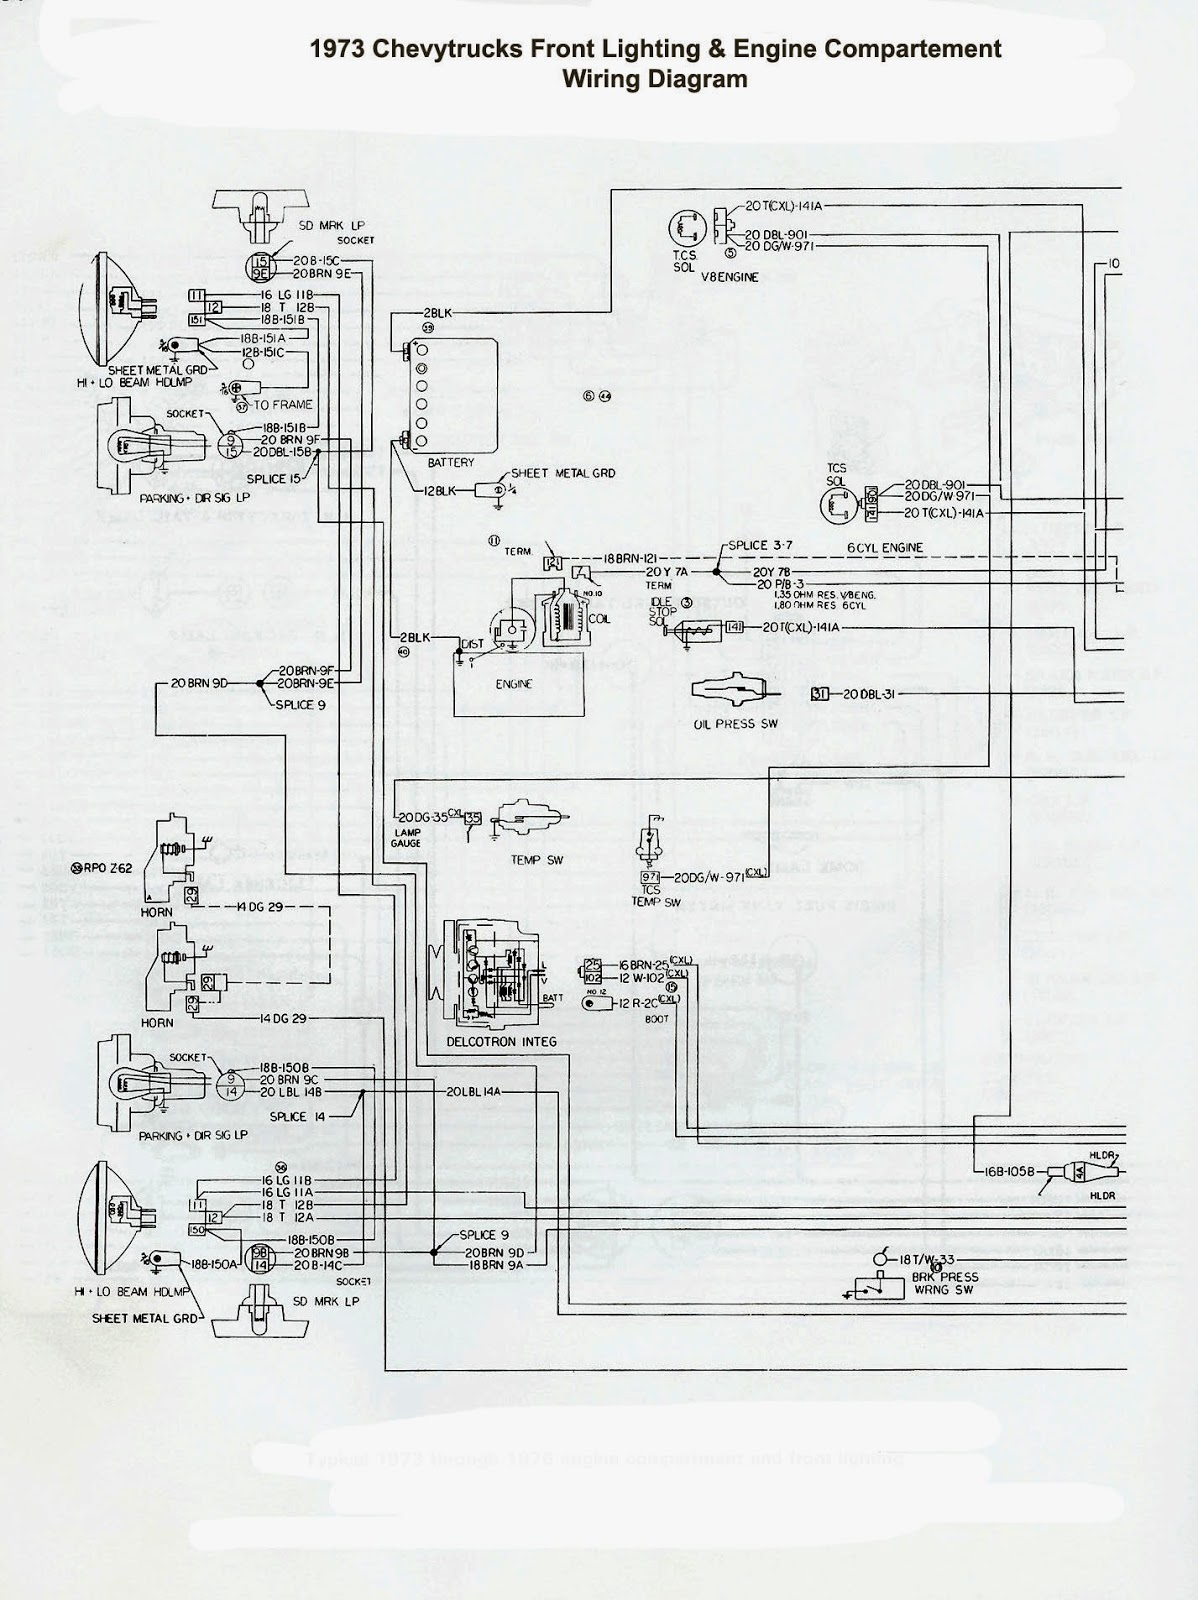 medium resolution of  engine compartement wiring diagram hopefully this diagram will help you assembly your chevy truck wiring diagram for available more detail electrical